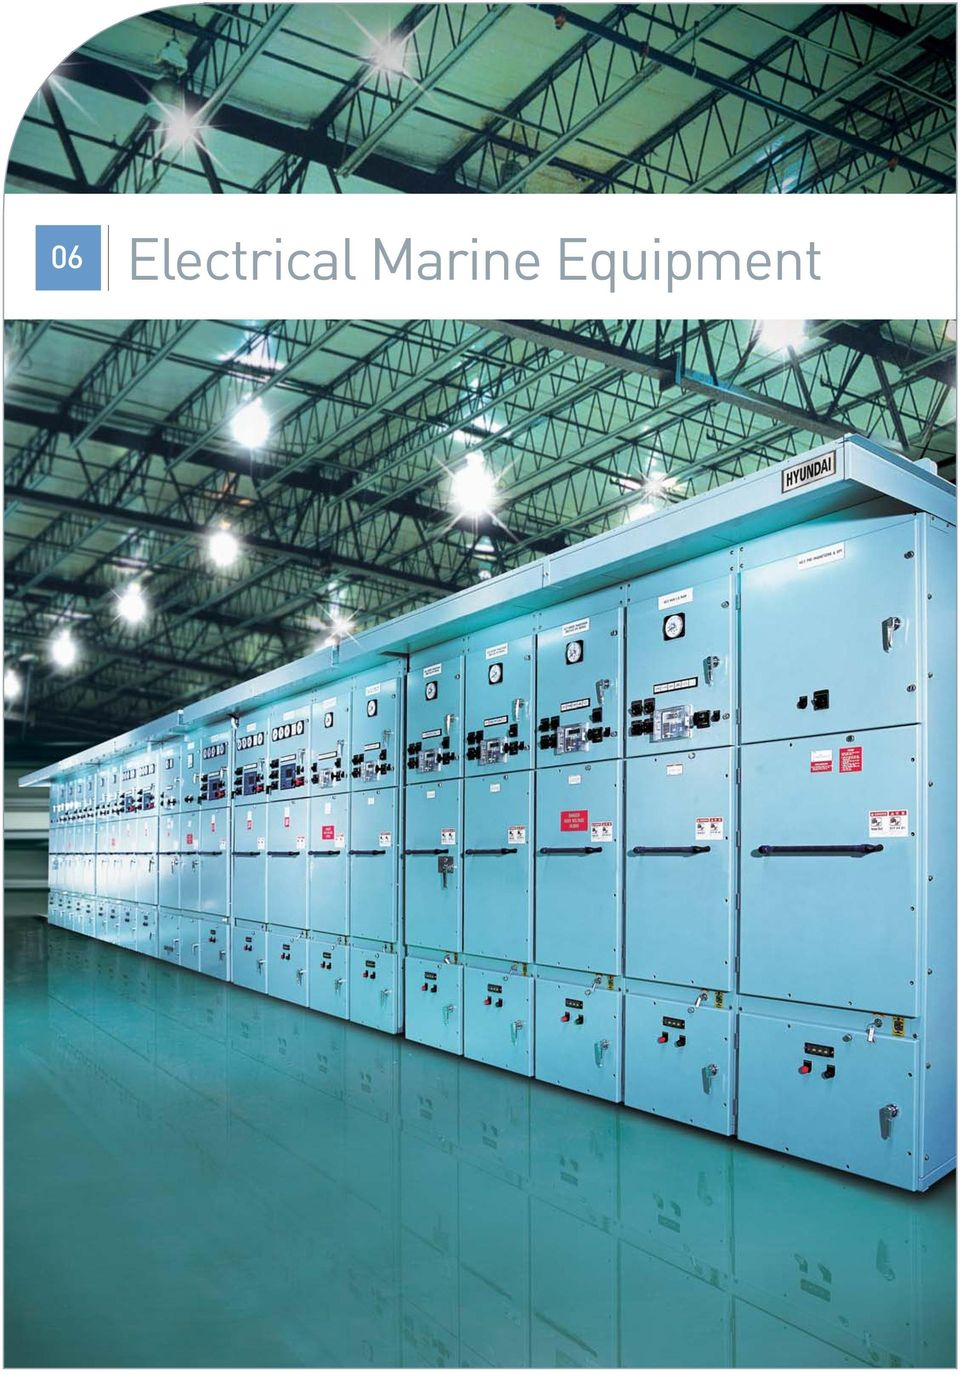 Hyundai Electro Electric Systems Pdf Installation Wiring Diagram Home Automation System Table Of By 21 Electrical Marine Equipment Hhi S Products Include Dry Type Transformers Generators Main Switchboards Engine Control Room Consoles